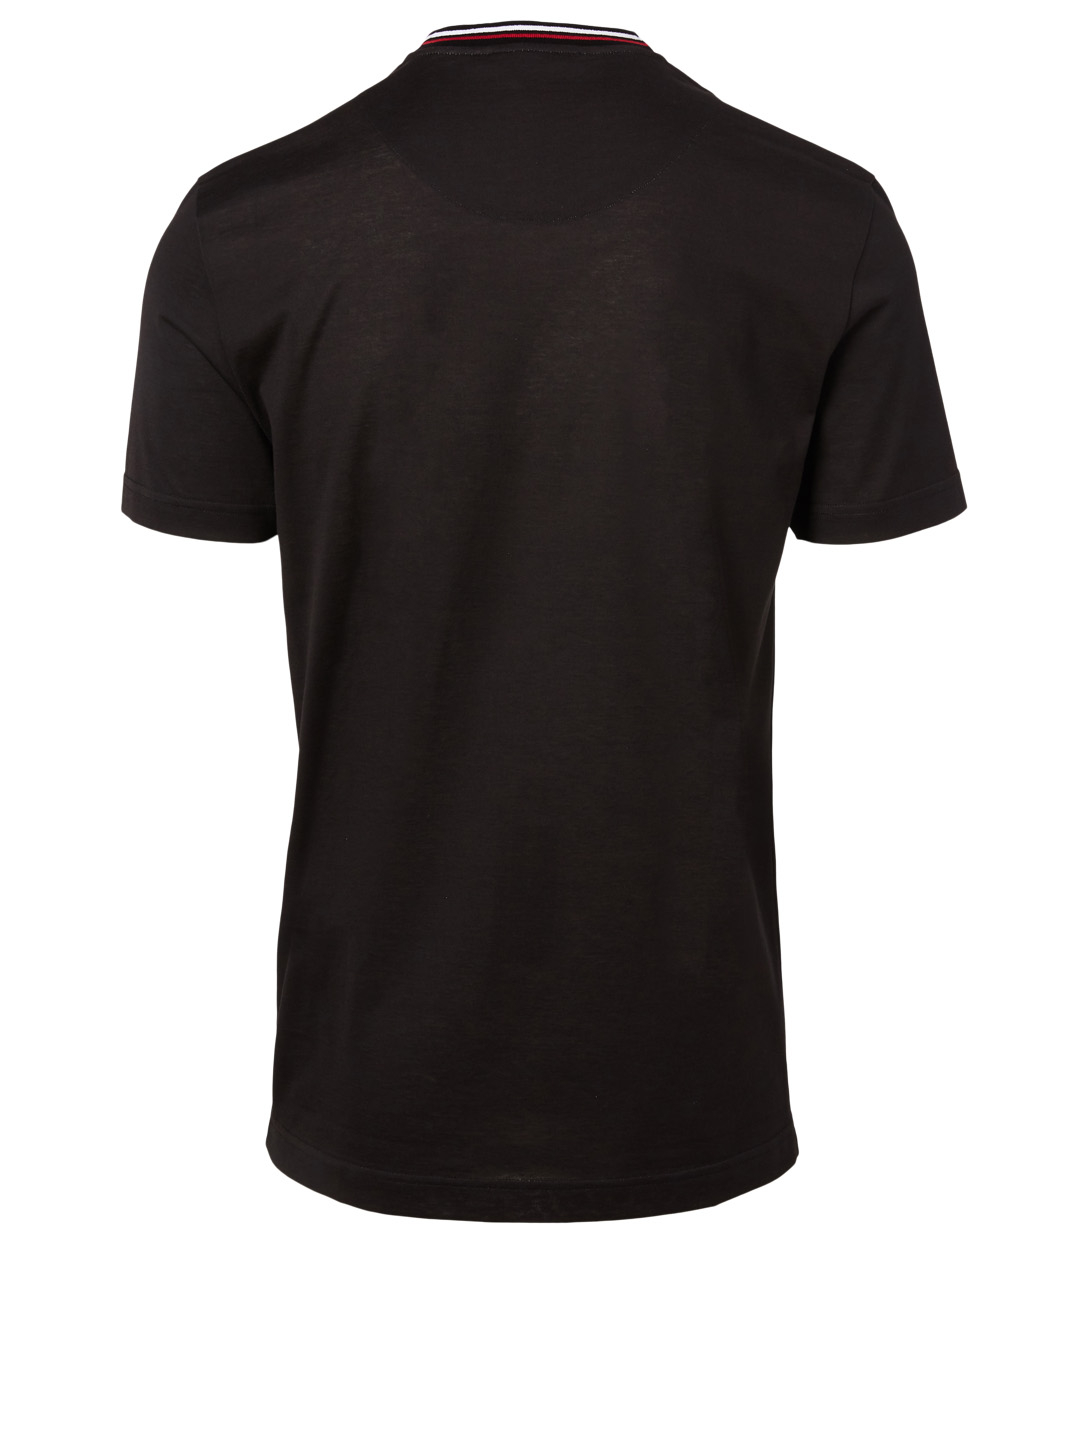 DOLCE & GABBANA Logo Cotton T-Shirt Men's Black